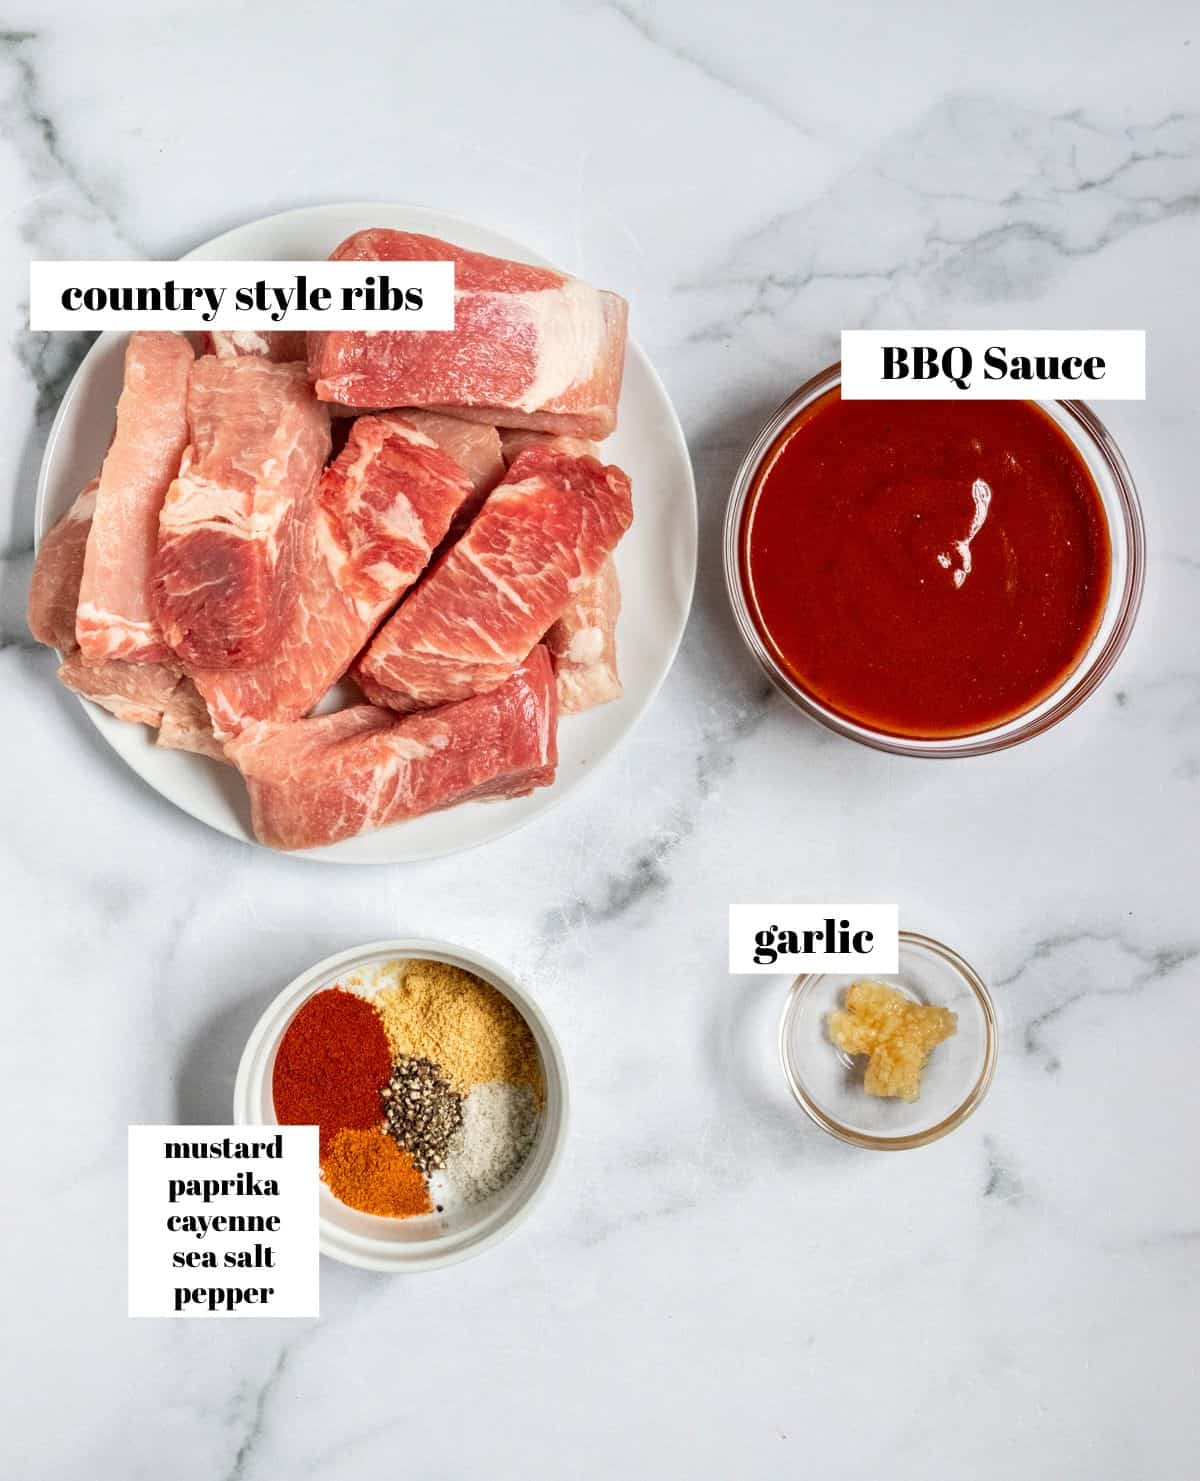 Raw ribs, BBQ sauce, garlic and spices on counter, labeled.